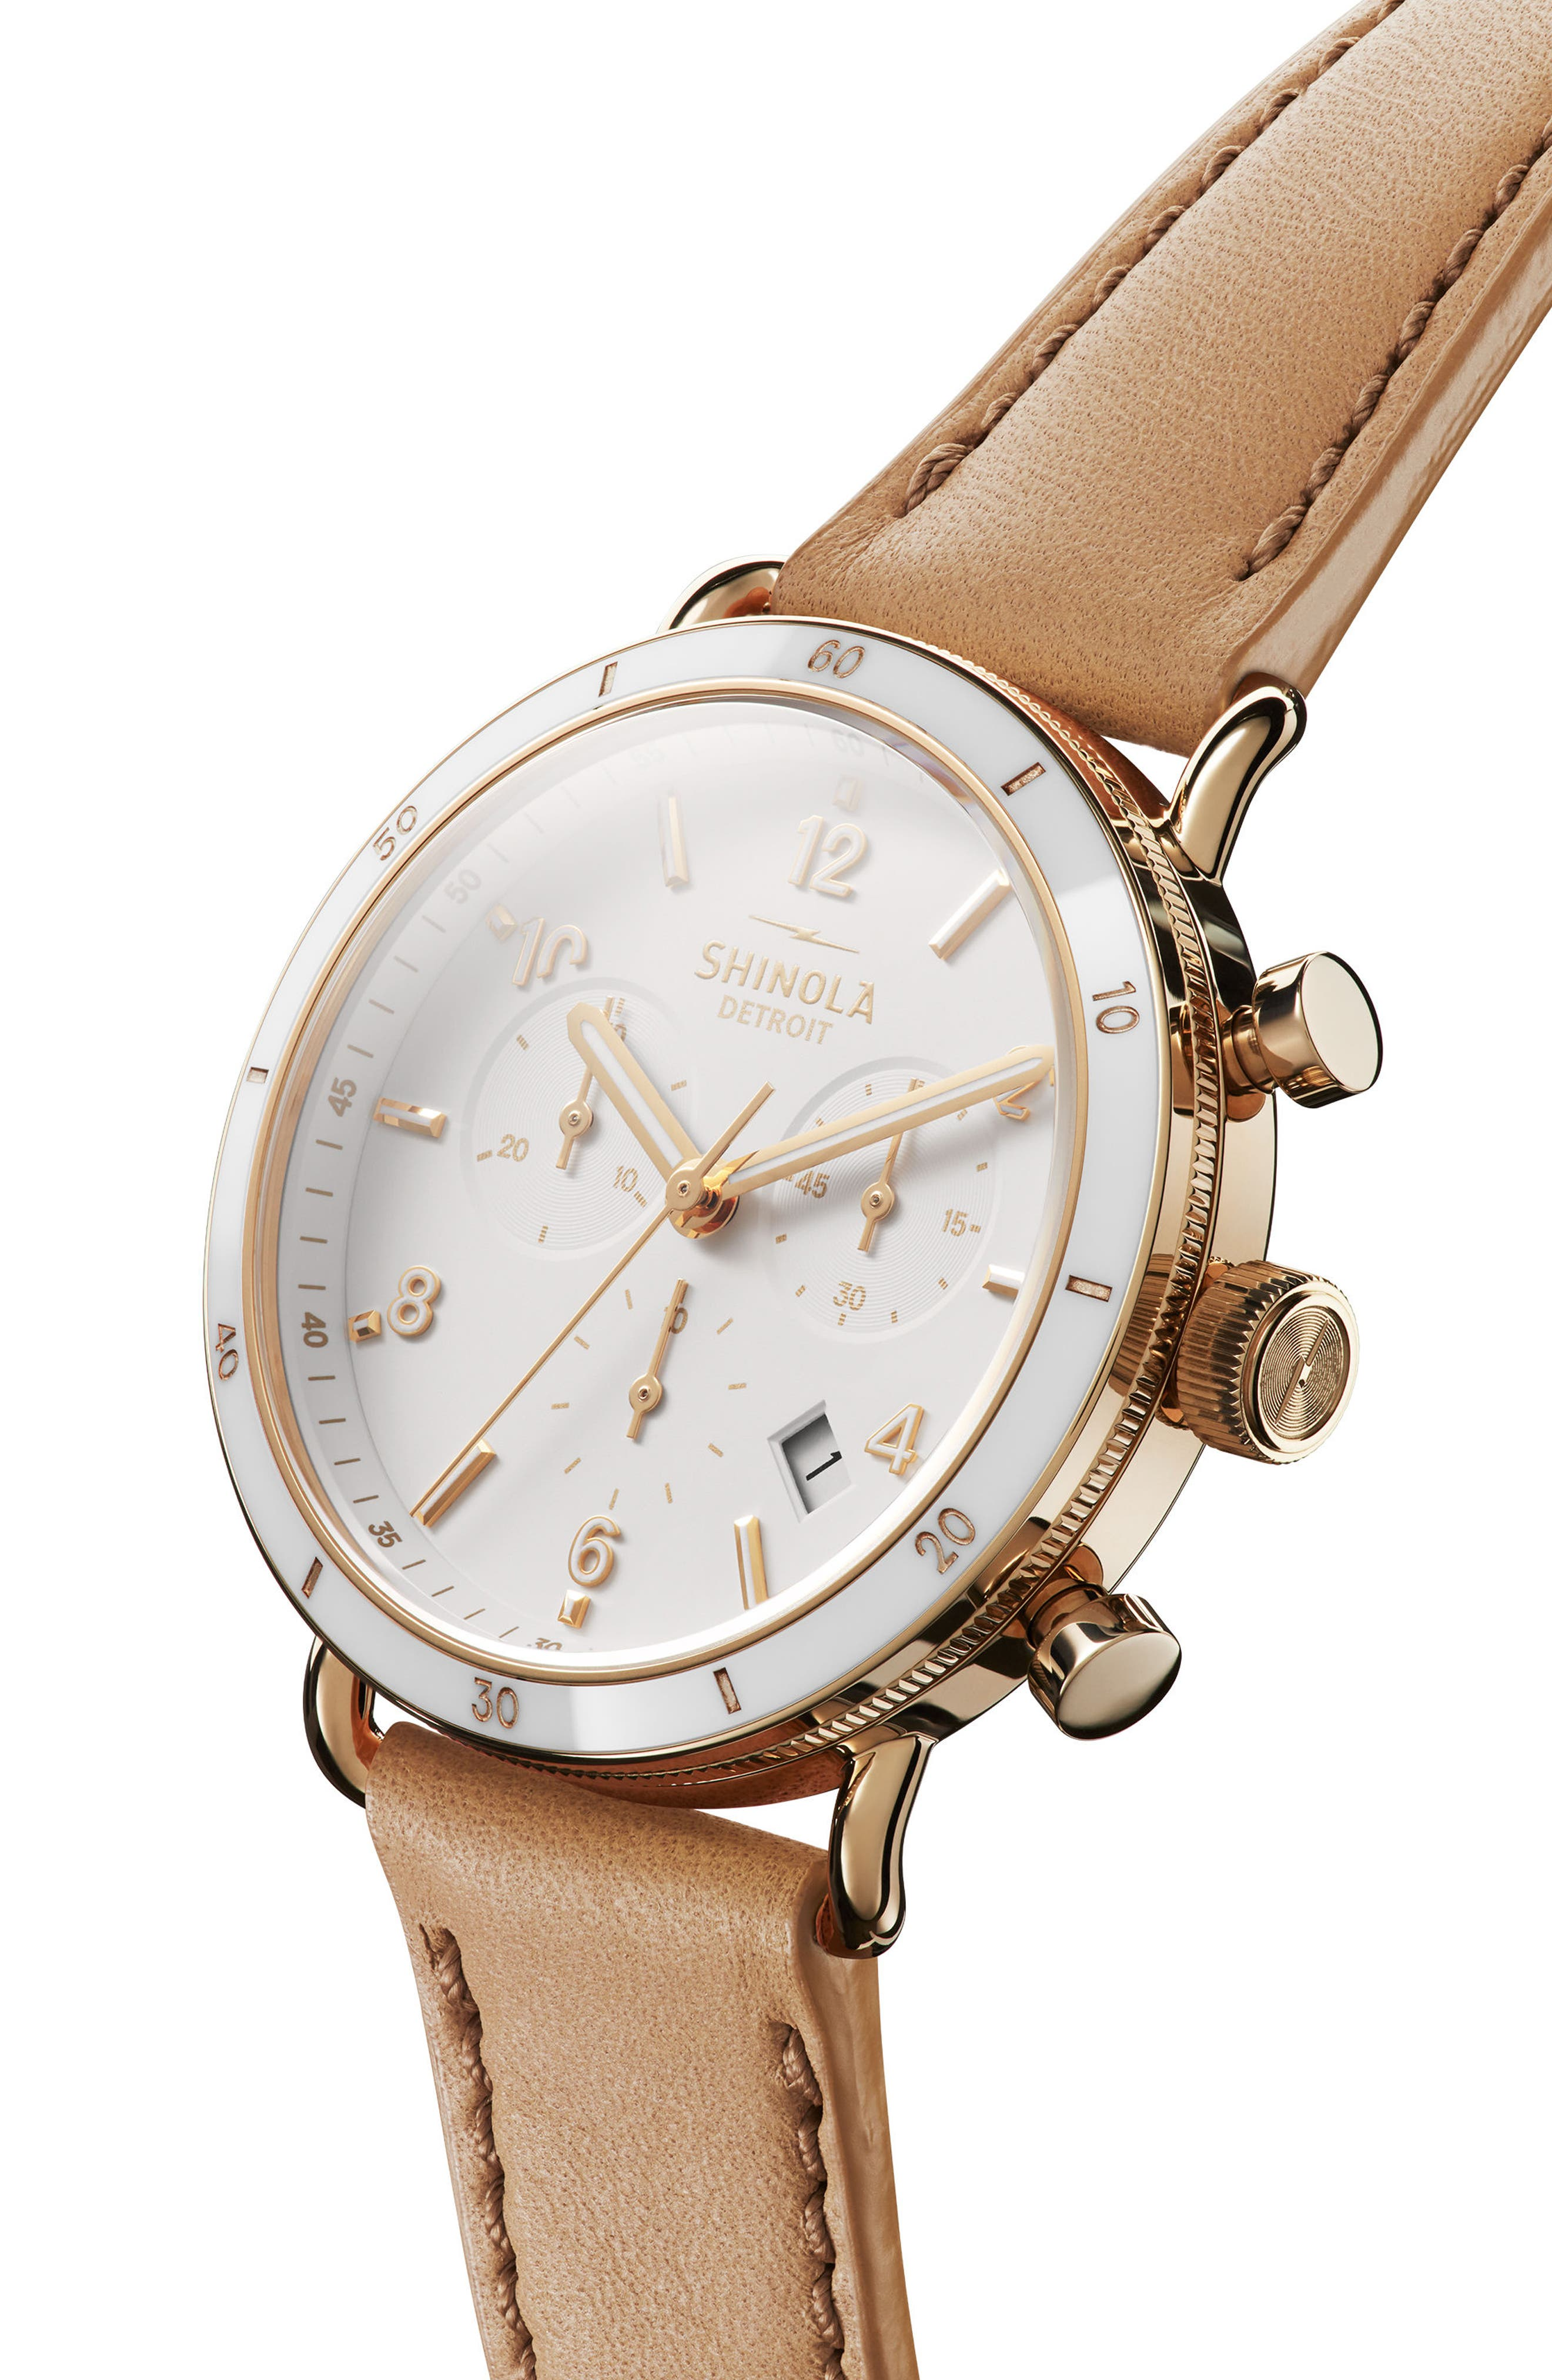 SHINOLA, The Canfield Chrono Leather Strap Watch, 40mm, Alternate thumbnail 5, color, CAMEL/ WHITE/ GOLD